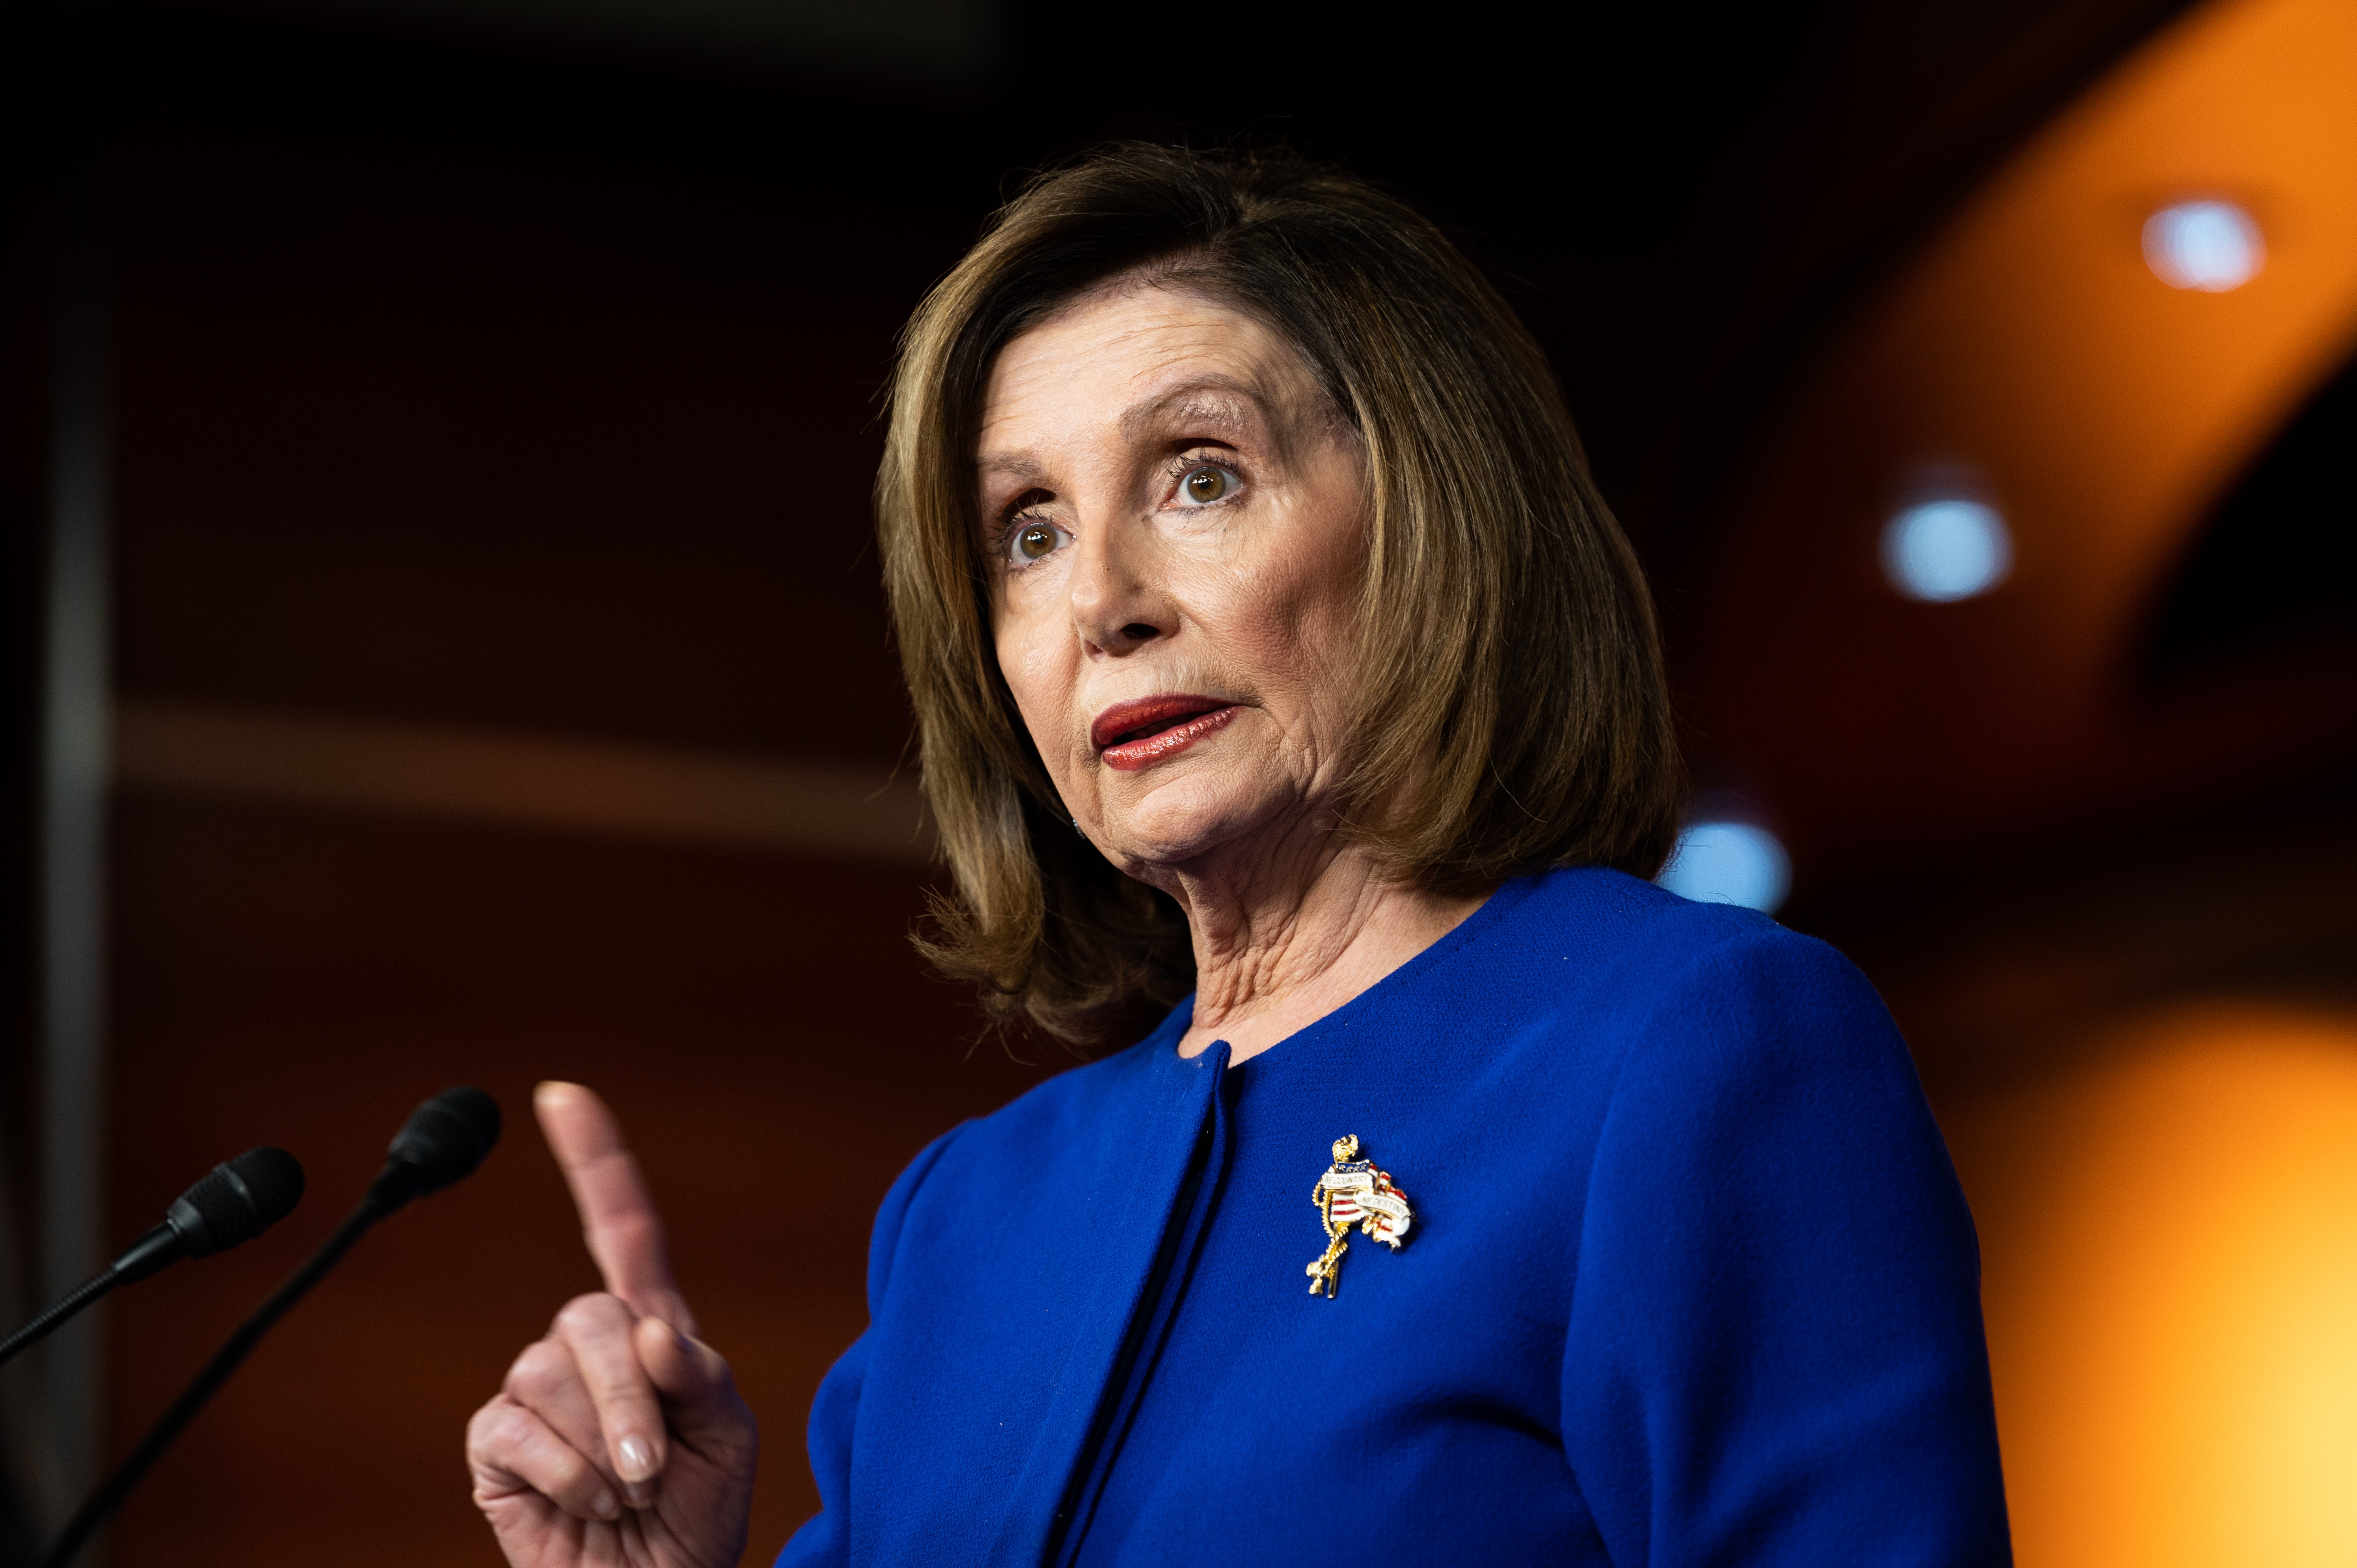 Nancy Pelosi days before naming impeachment managers